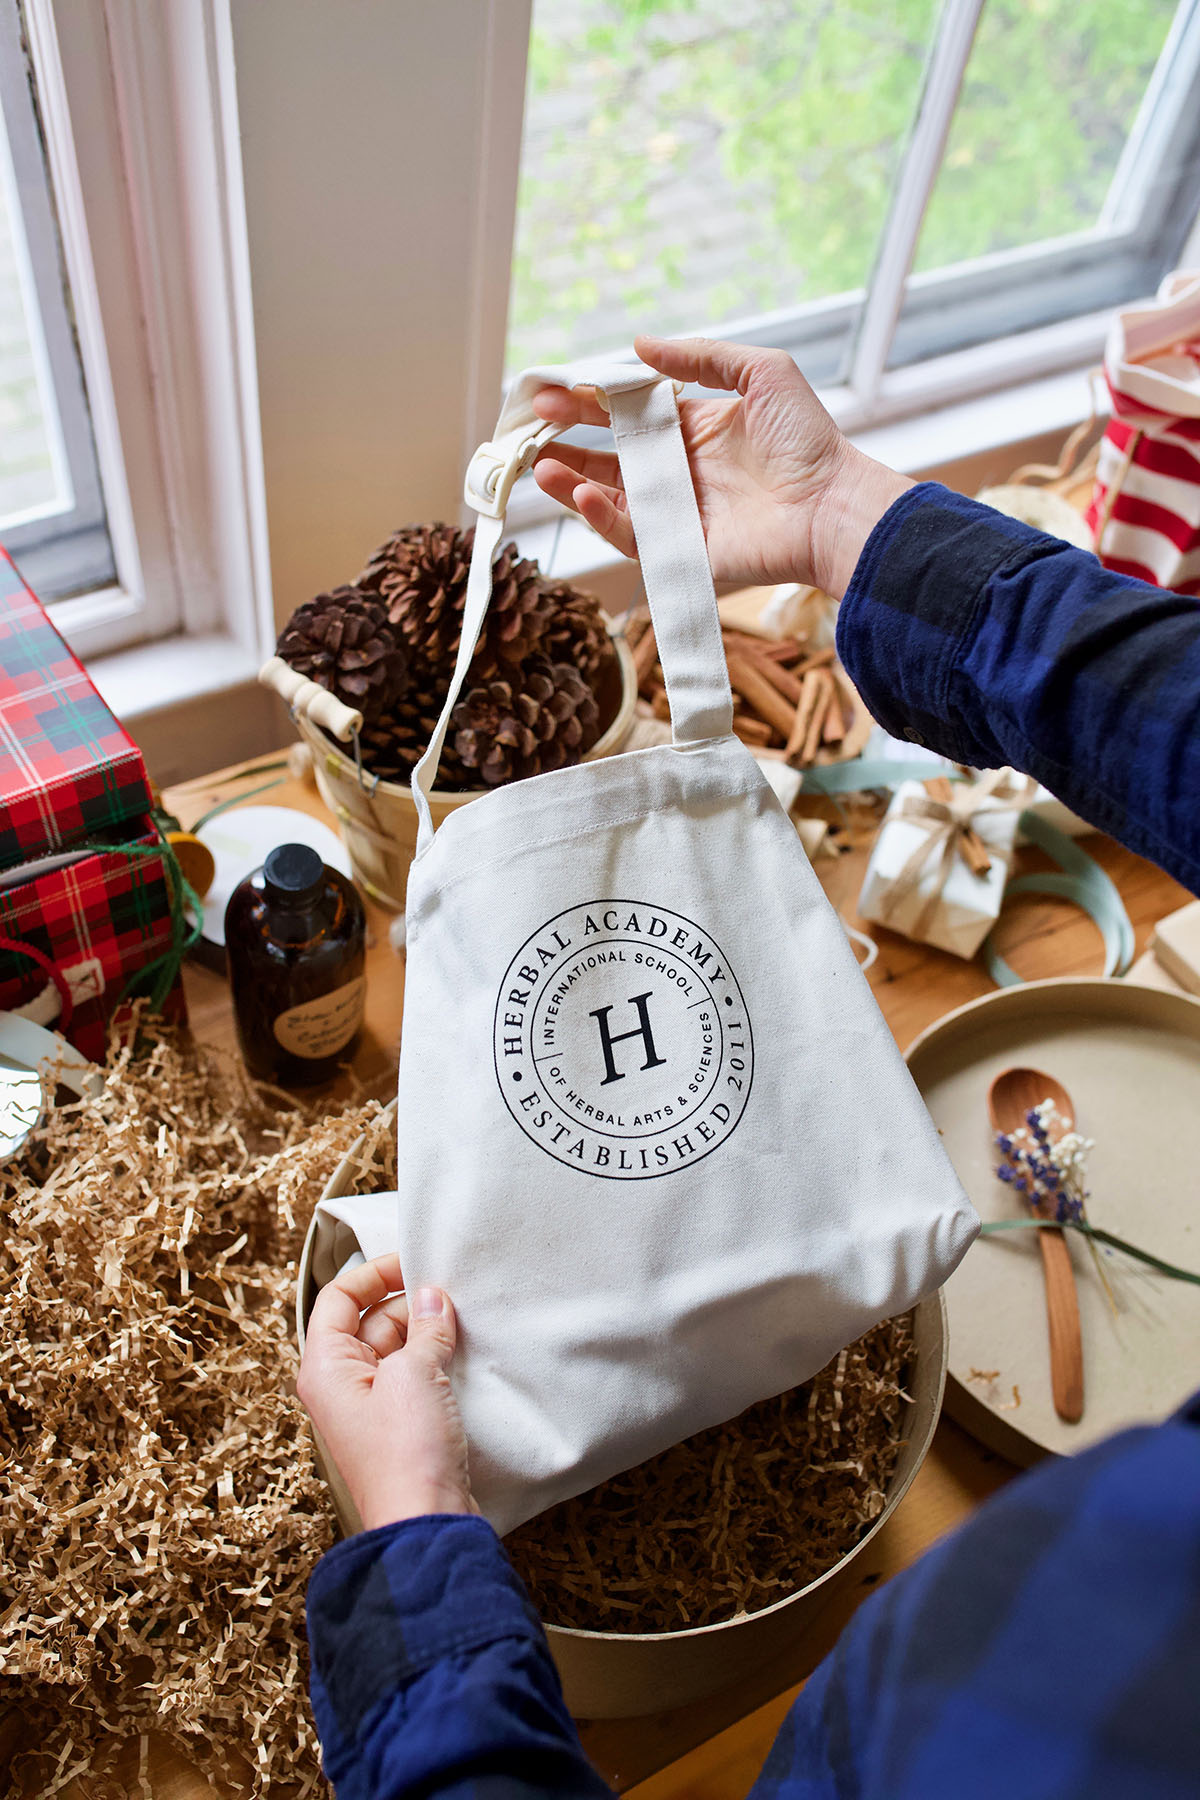 7 Gifts Ideas For The Herbalist Who Is Just Getting Started | Herbal Academy | The holidays will be here before you know it! Here are 7 beginner herbalist gift ideas for the person who is just getting started on their herbal journey!